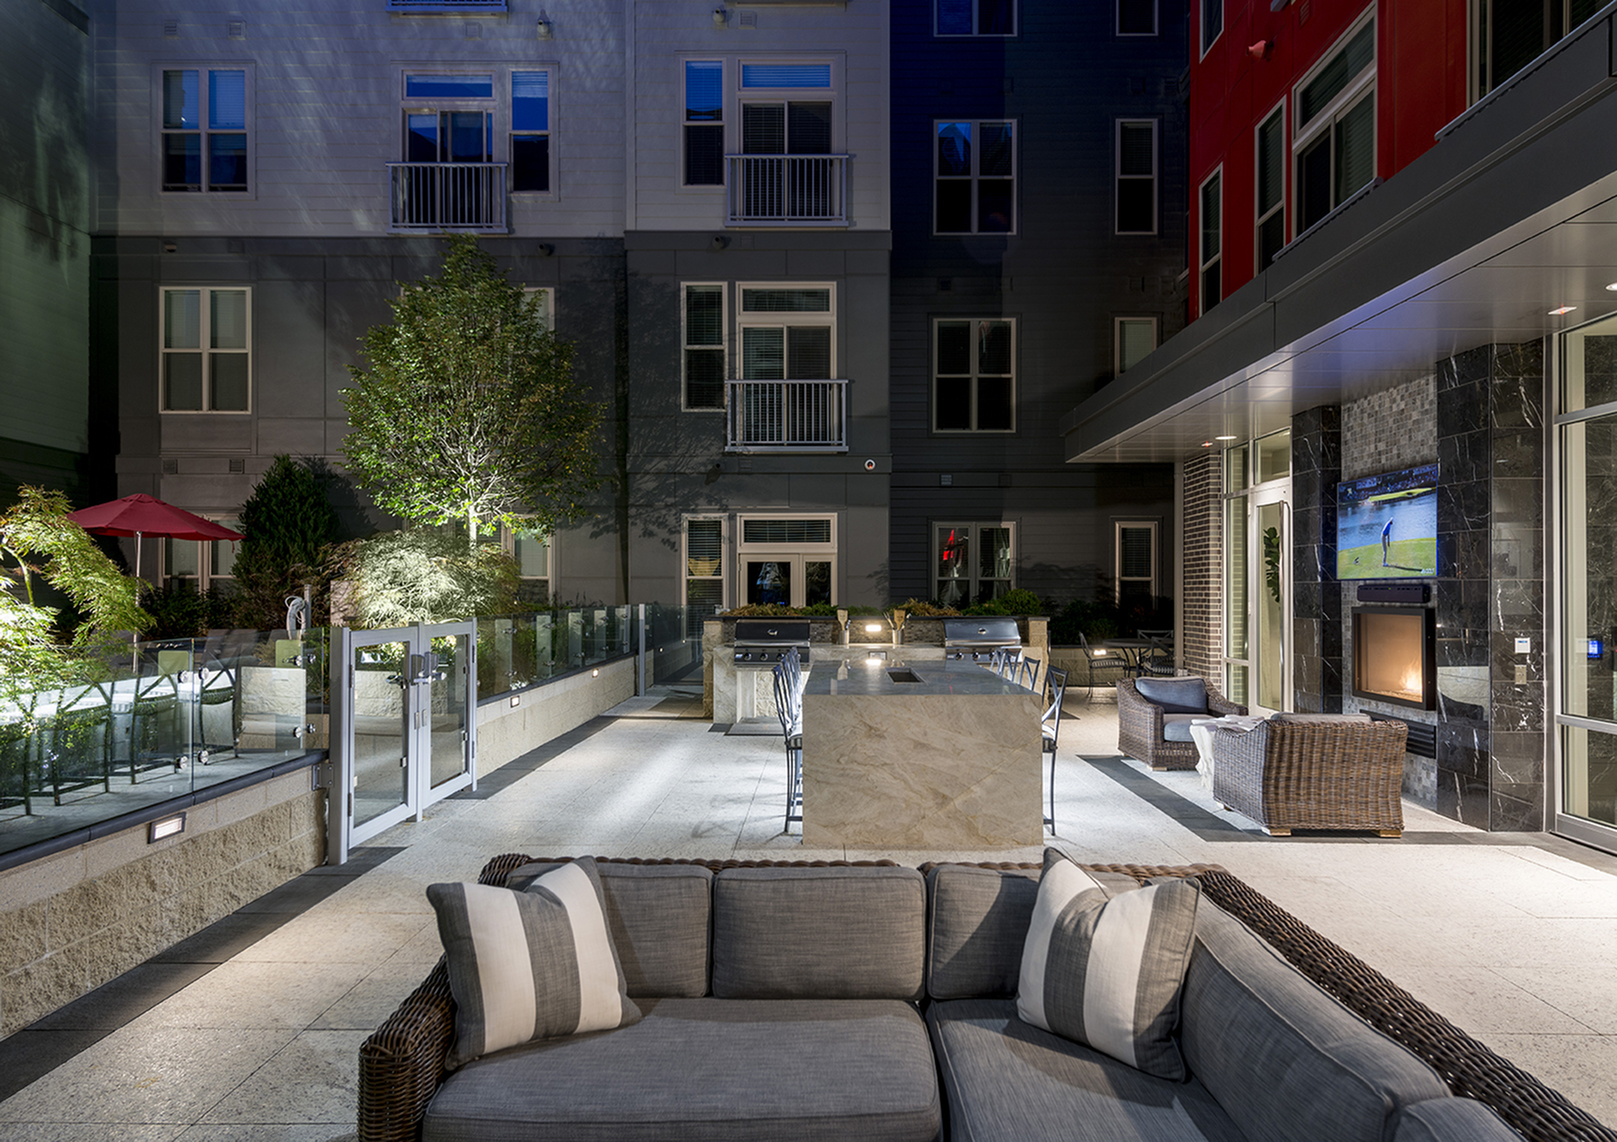 Image of Two landscaped courtyards with dining and grilling stations for Hanover Alewife